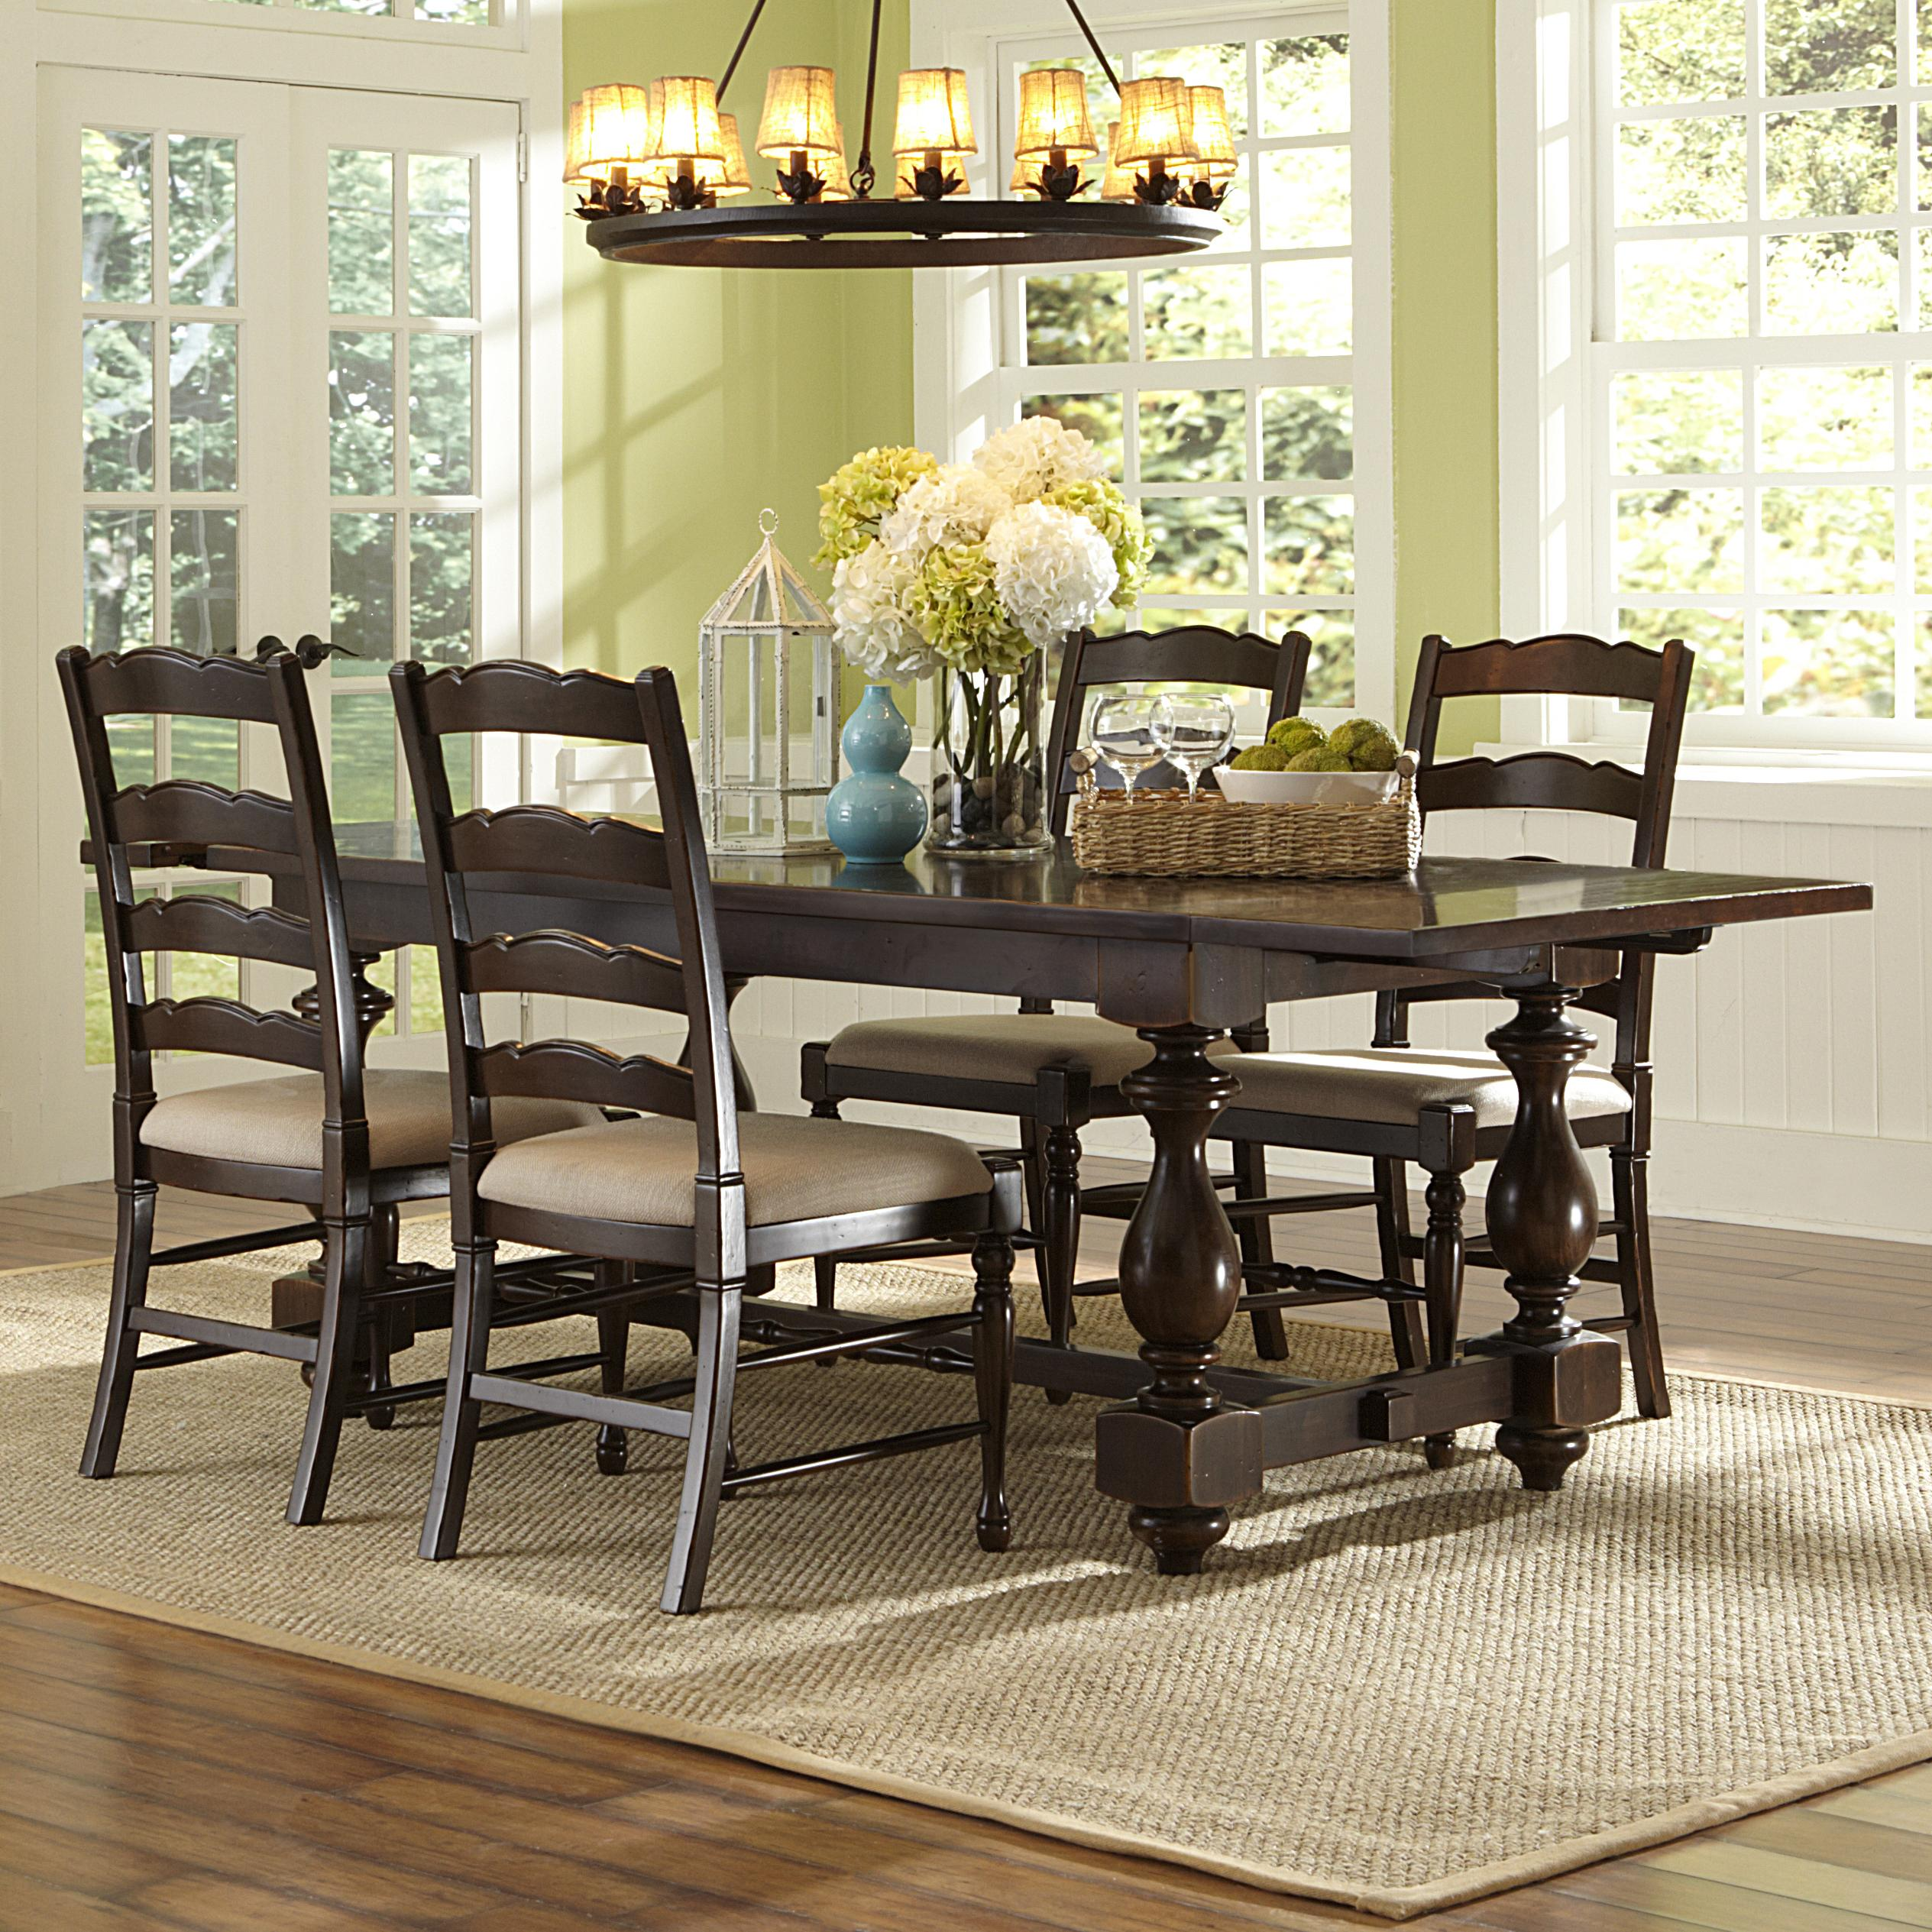 Magnussen Home  Loren 5 Piece Rectangular Table and Chair Set - Item Number: D2470-20+4x62